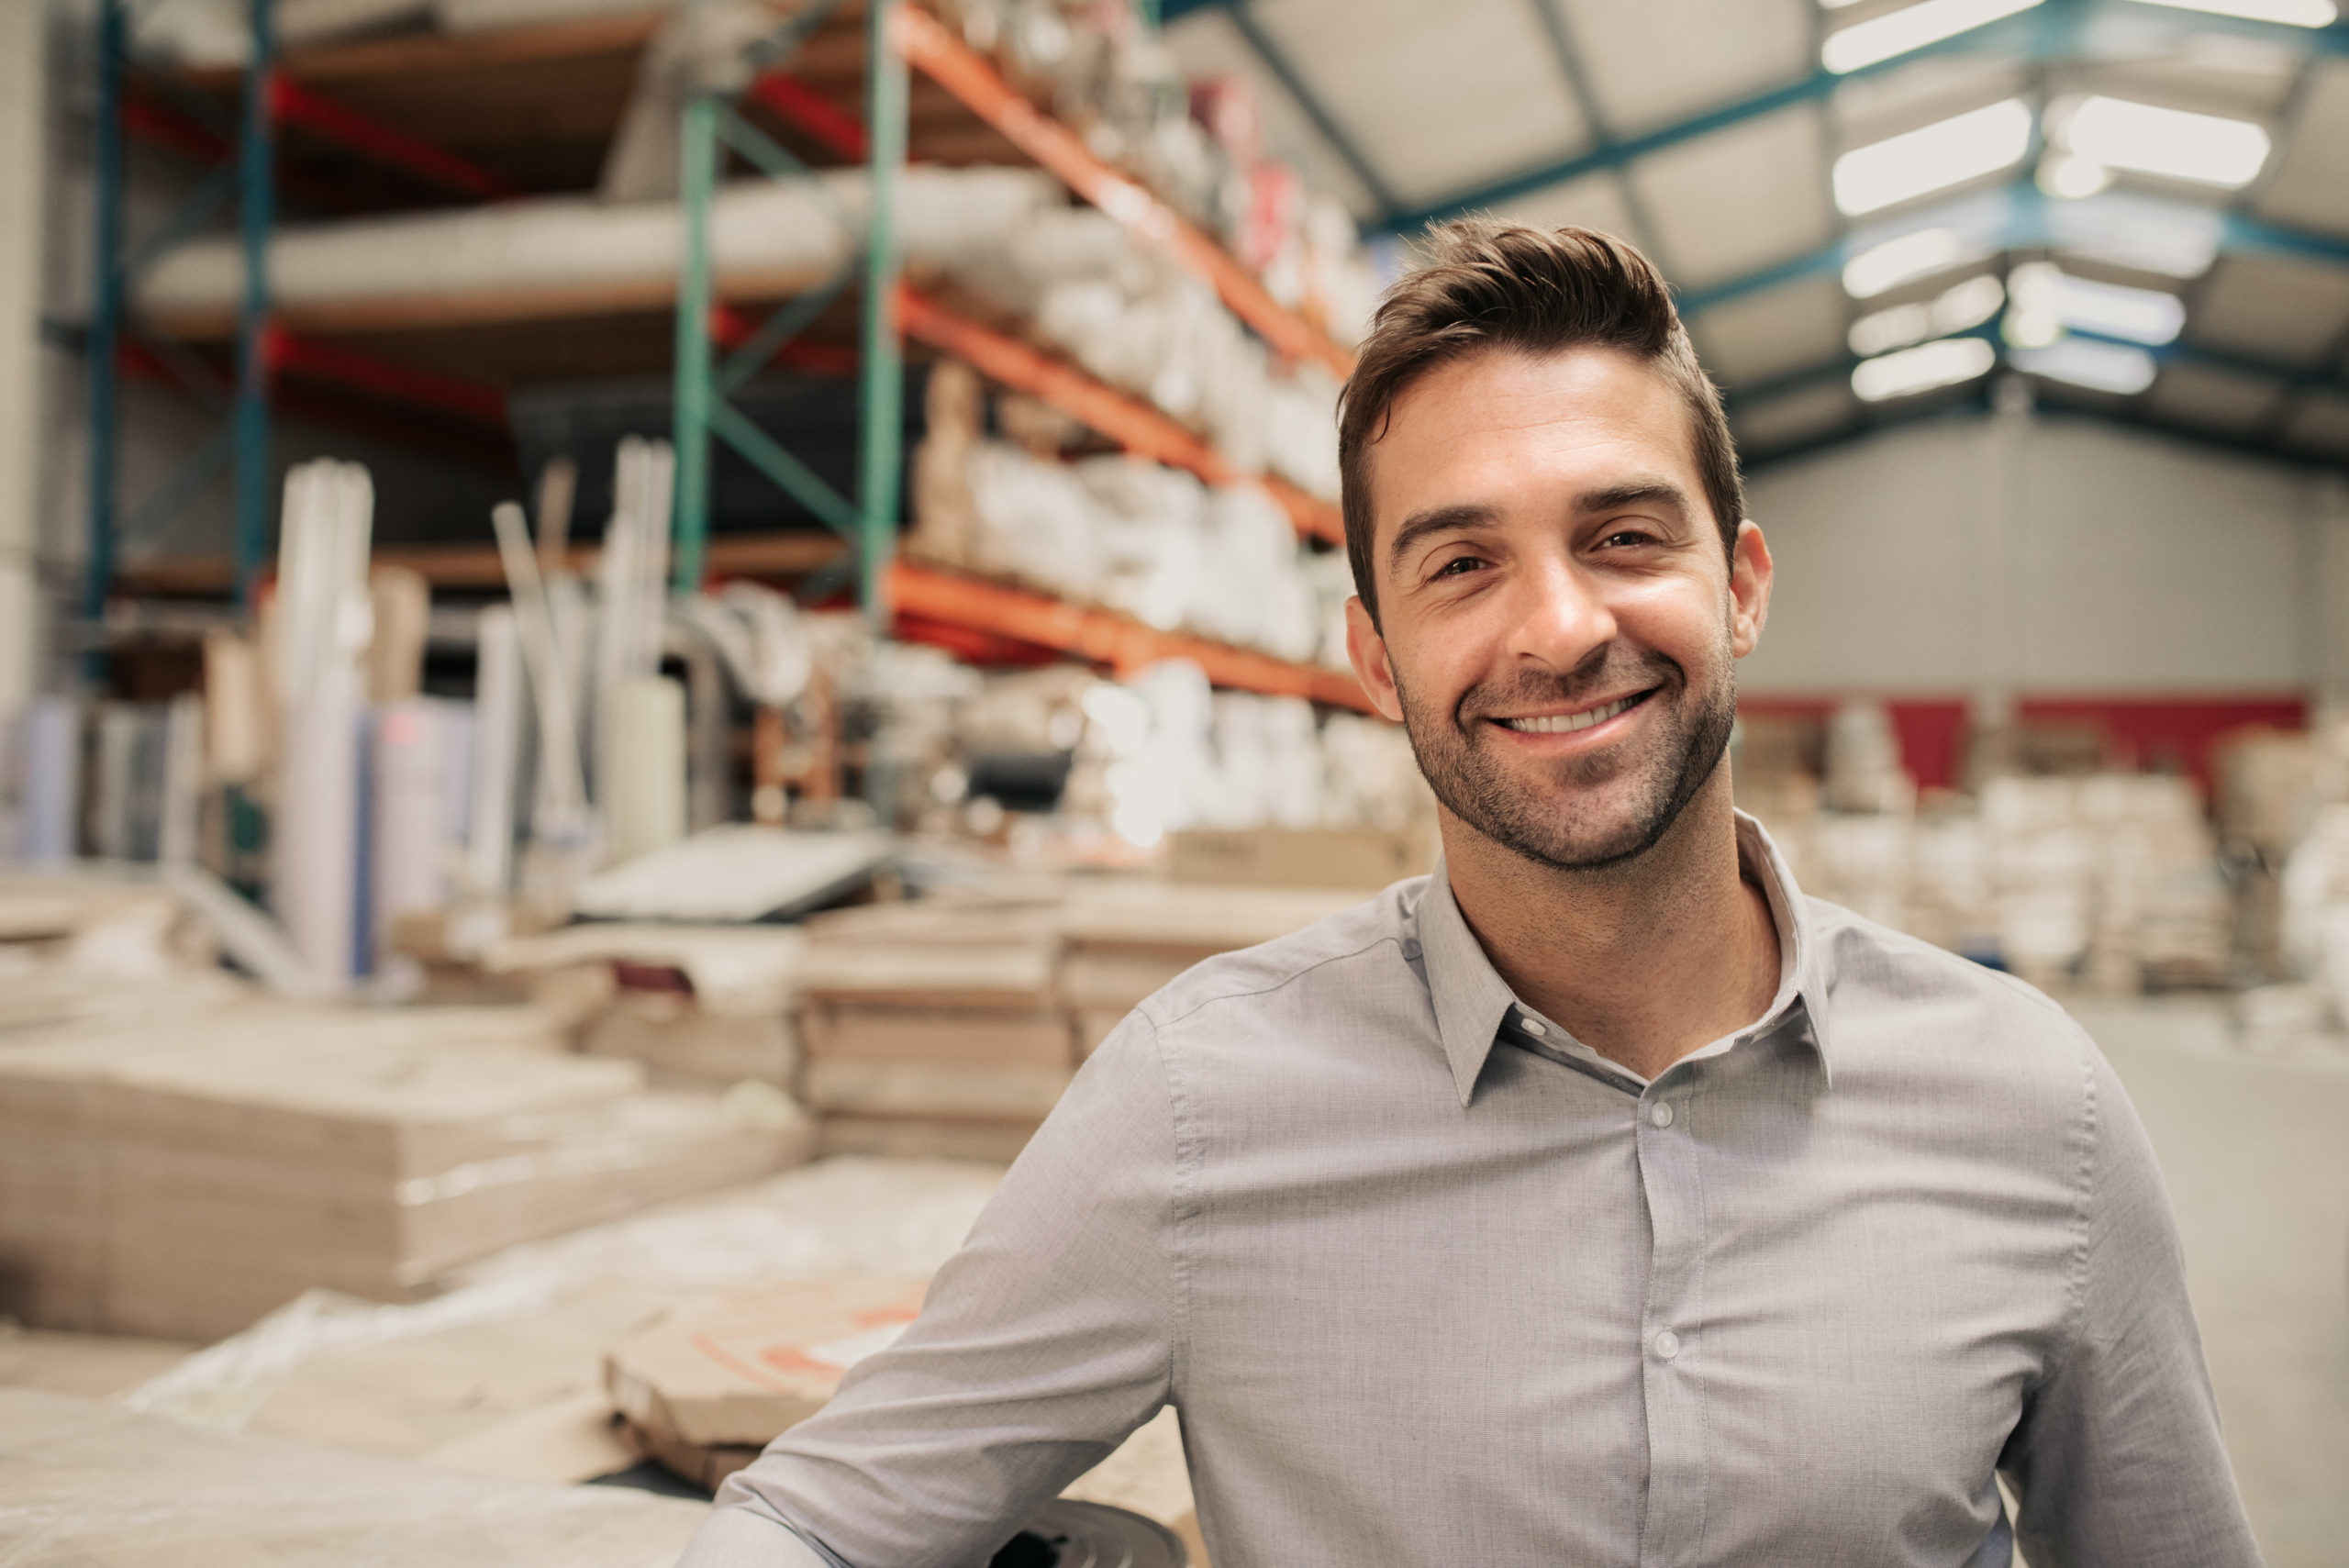 Portrait of a smiling warehouse manager leaning against some stock with stacks of carpets on shelves in the background